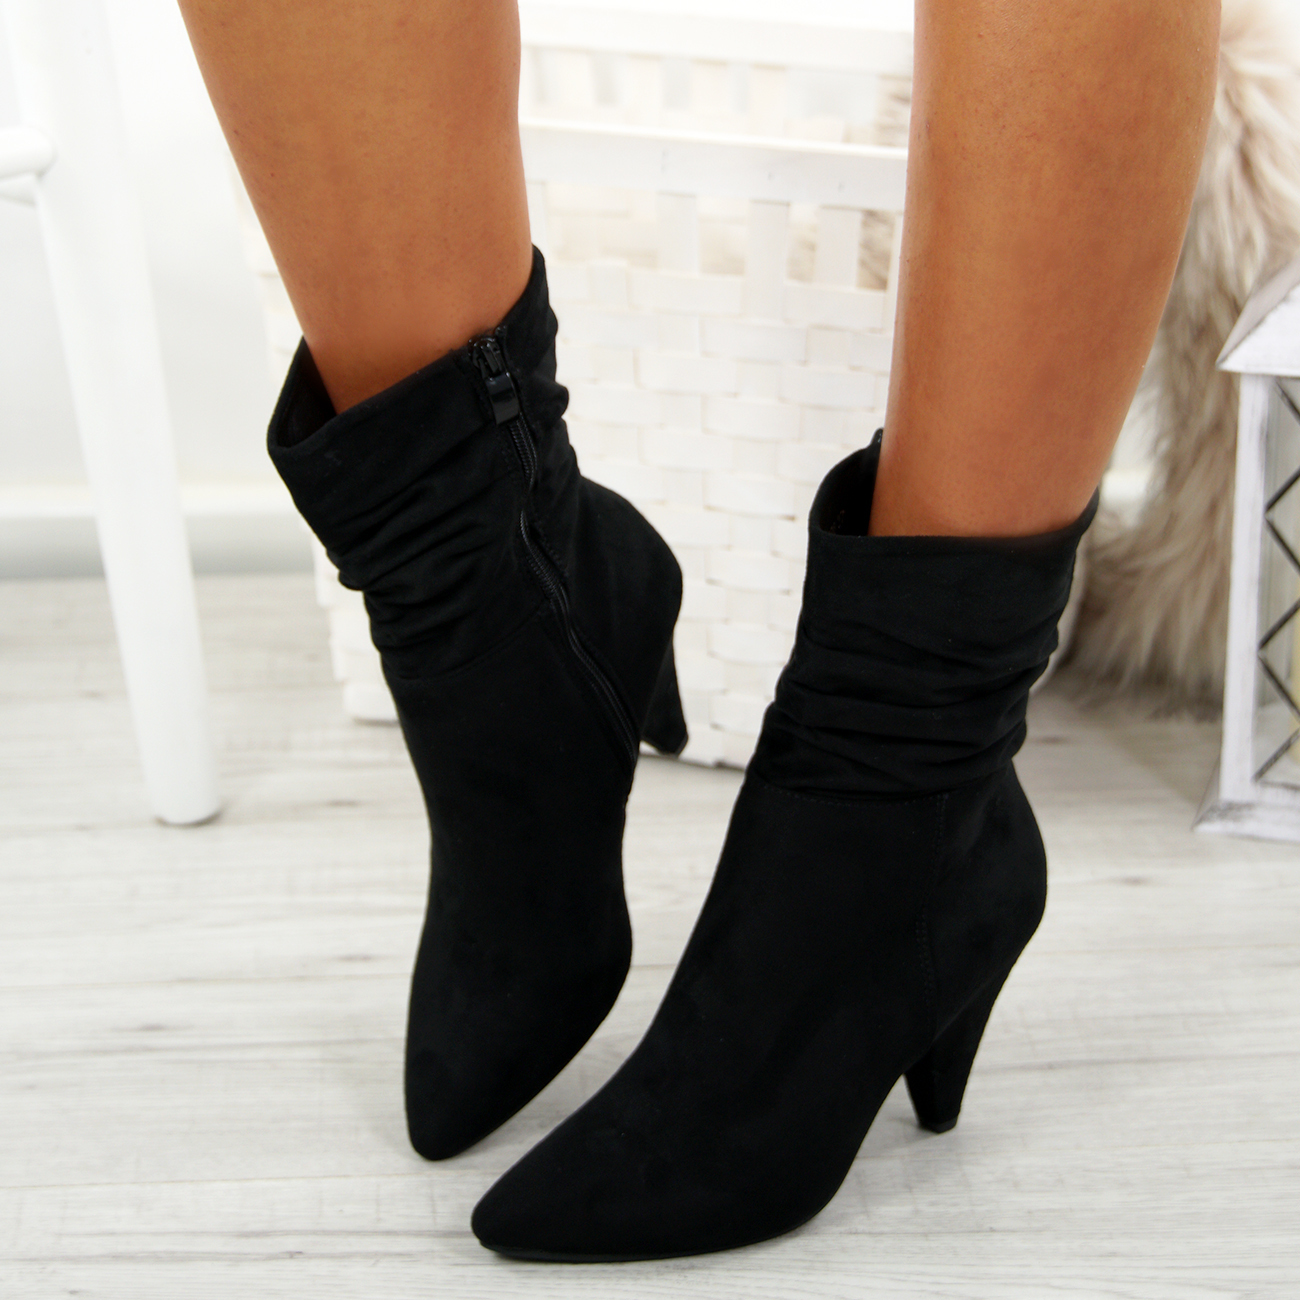 LADIES-WOMENS-ANKLE-BOOTS-MID-CONE-HEELS-POINTY-RUCHED-BAGGY-ZIP-CALF-SHOES